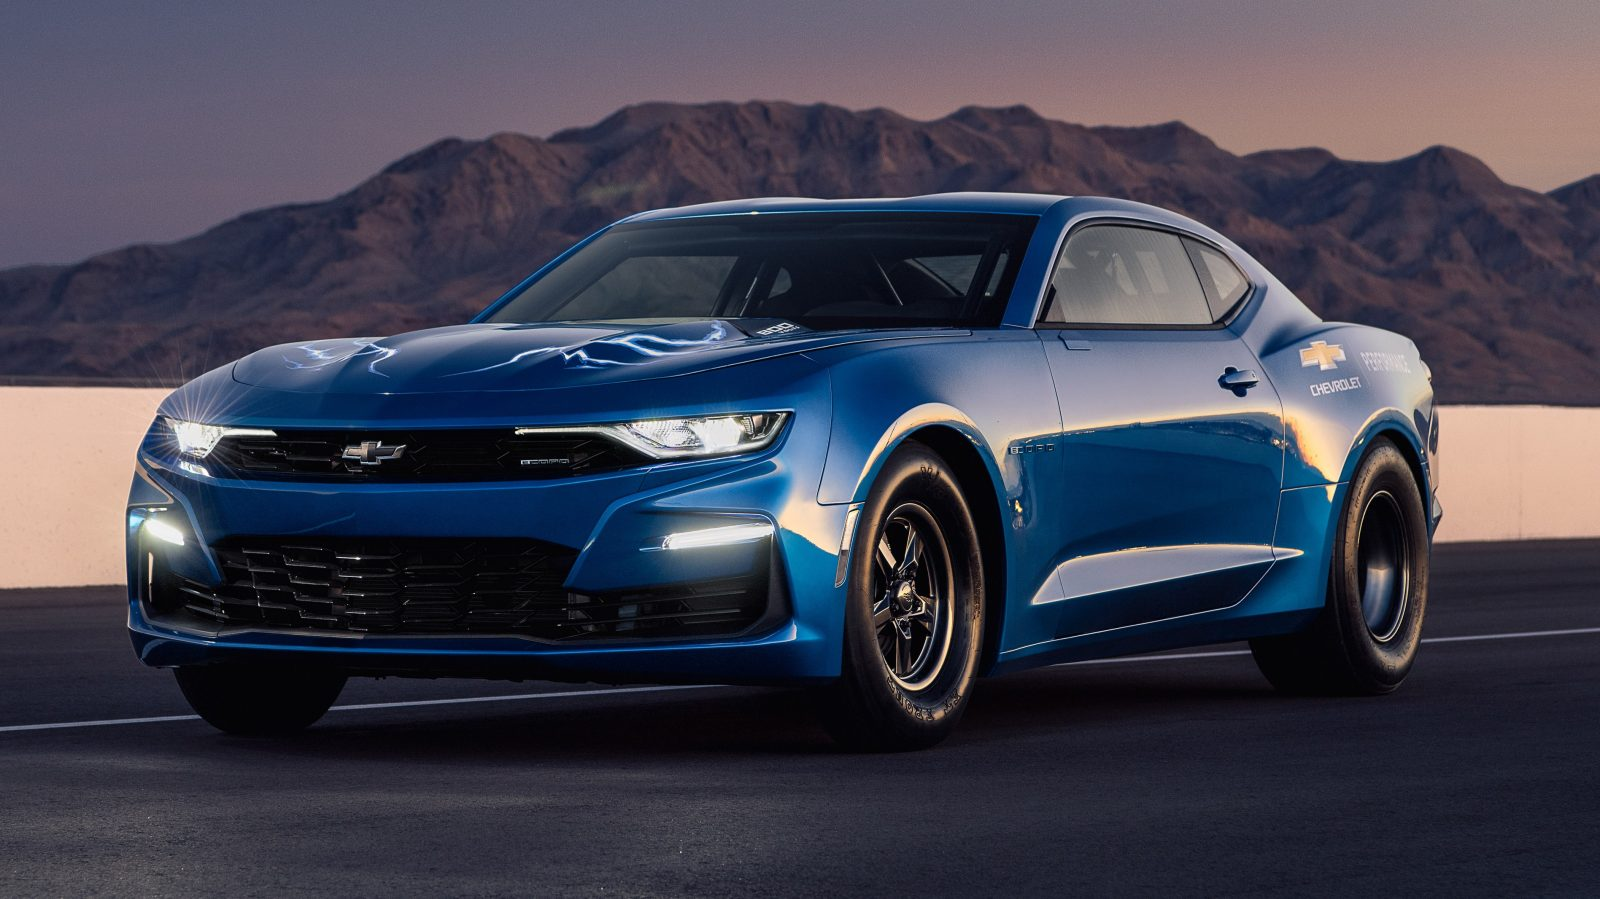 Chevy shows off a 800V Electric 'eCOPO' Camaro conversion